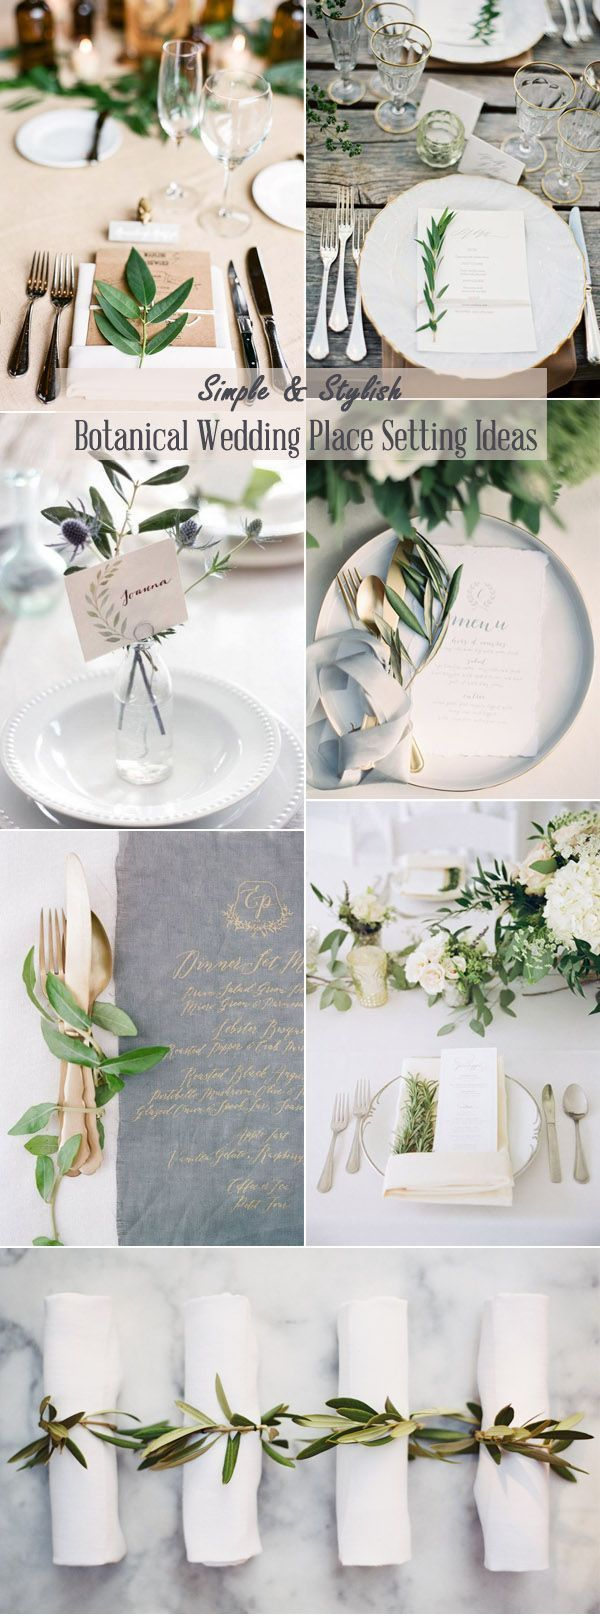 7 best Wedding Gift Ideas from the Garden Shop images on Pinterest ...